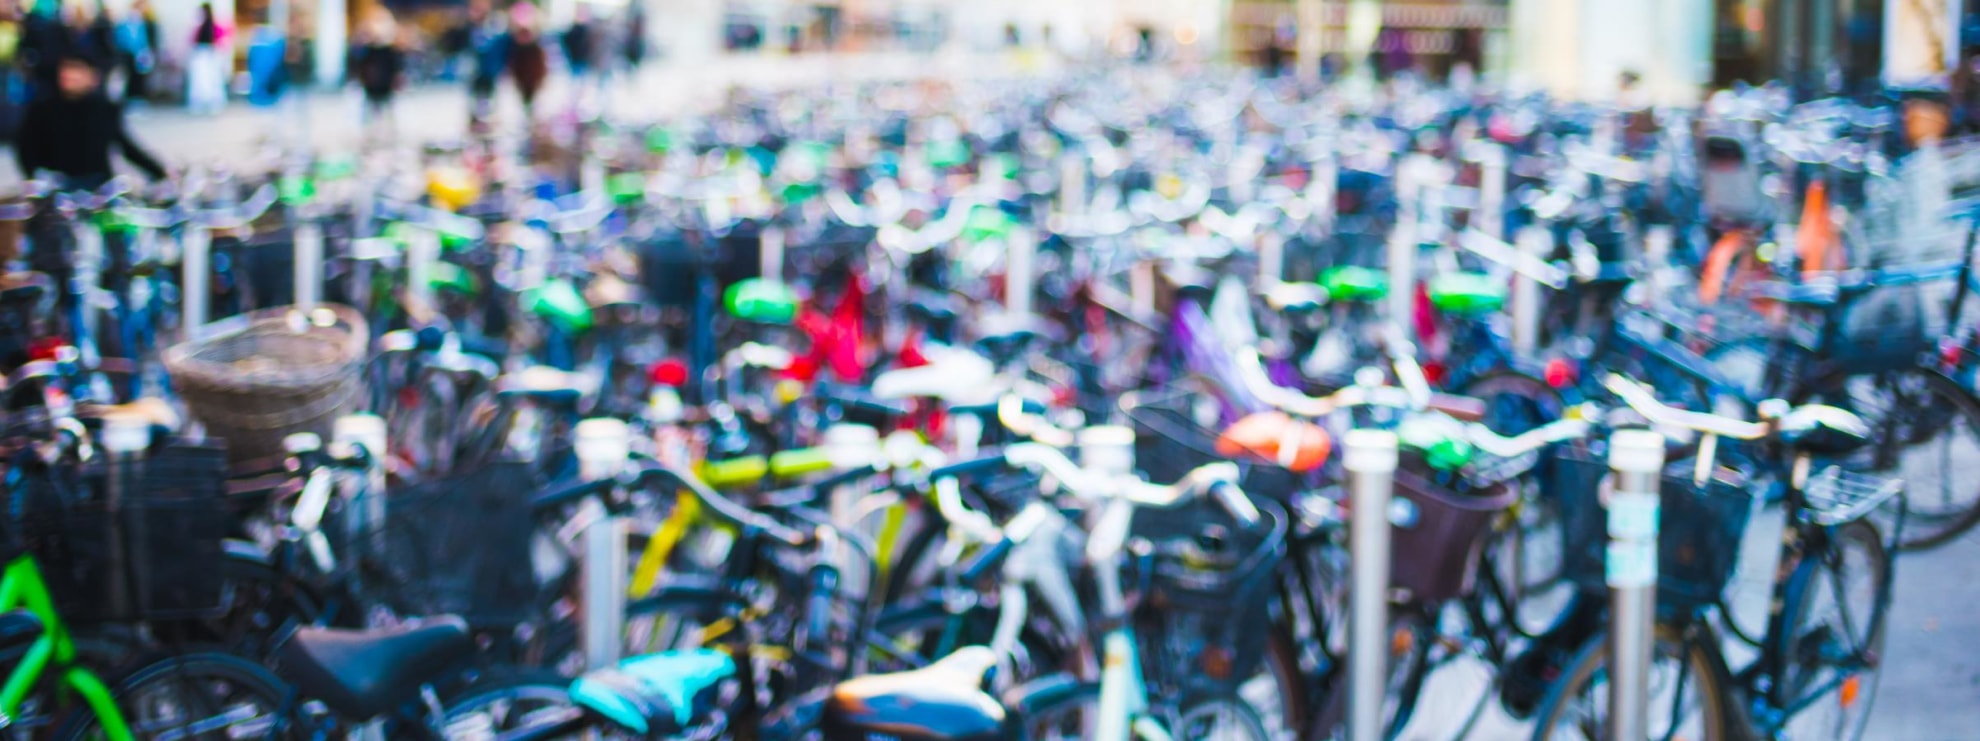 Intentionally blurred view of a lot of bicycles